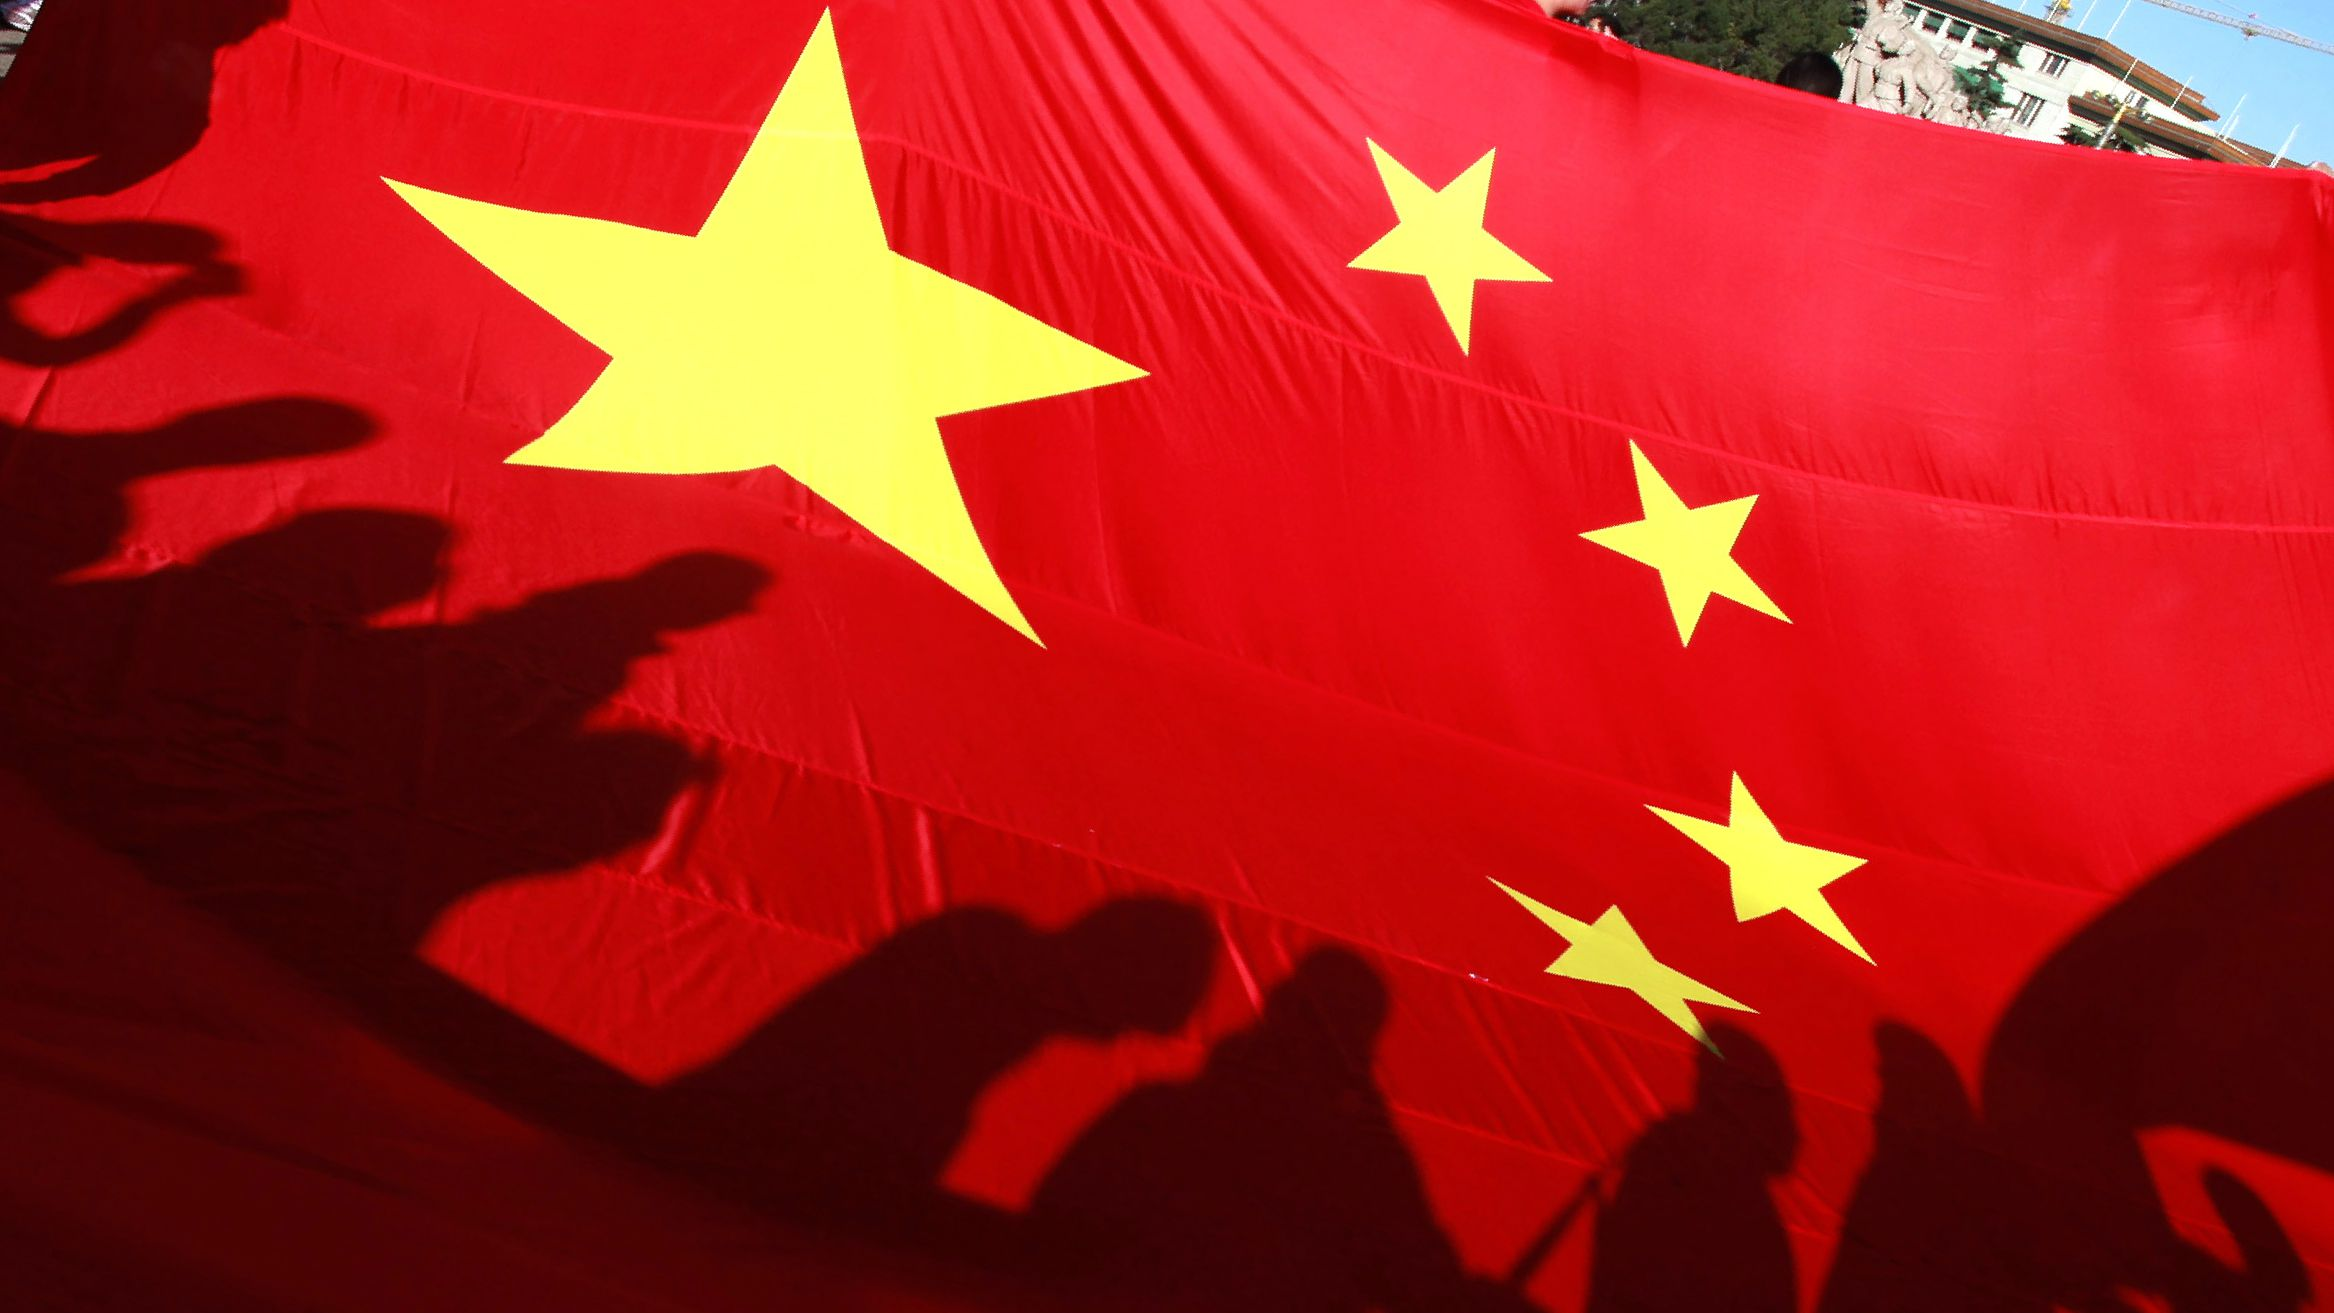 Participants cast shadows on a giant Chinese national flag before the start of the Beijing Marathon on Tiananmen Square in Beijing Sunday, Oct. 16, 2011. (AP Photo/Ng Han Guan